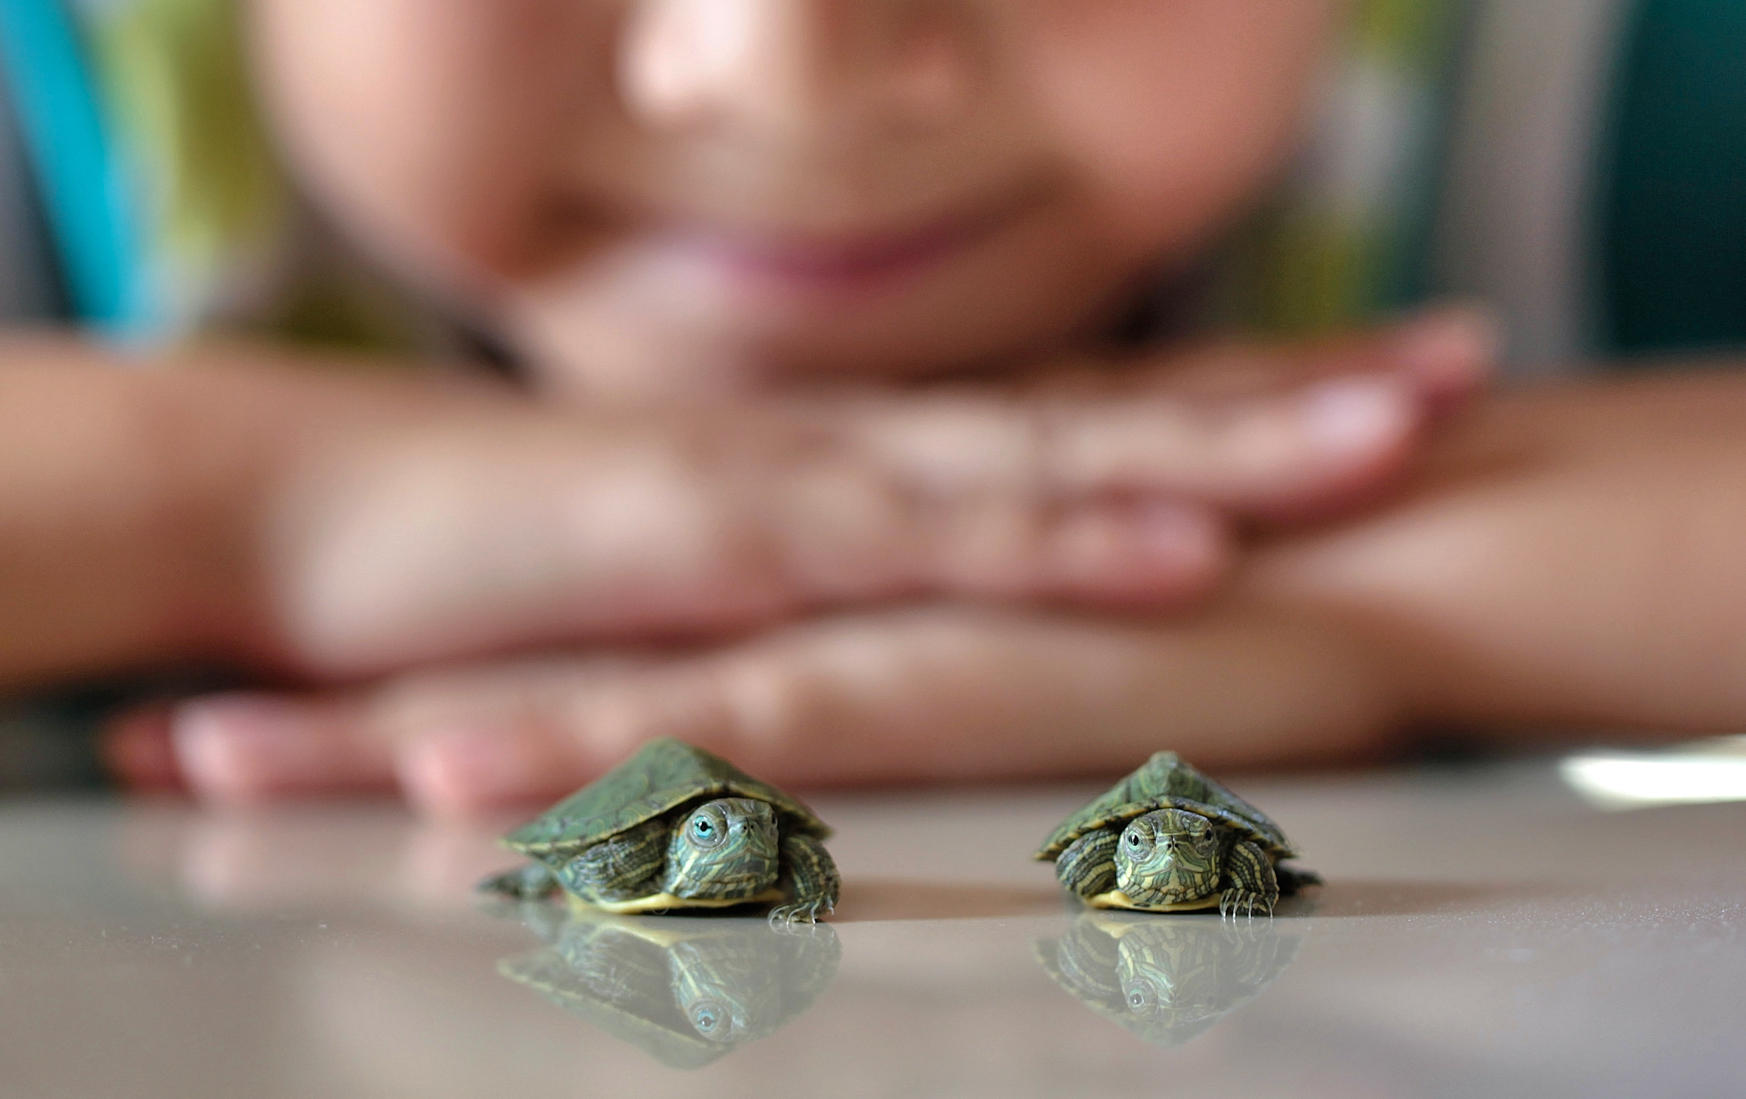 Beware of Turtle: Pet Reptiles Cause Salmonella Outbreak in 13 States